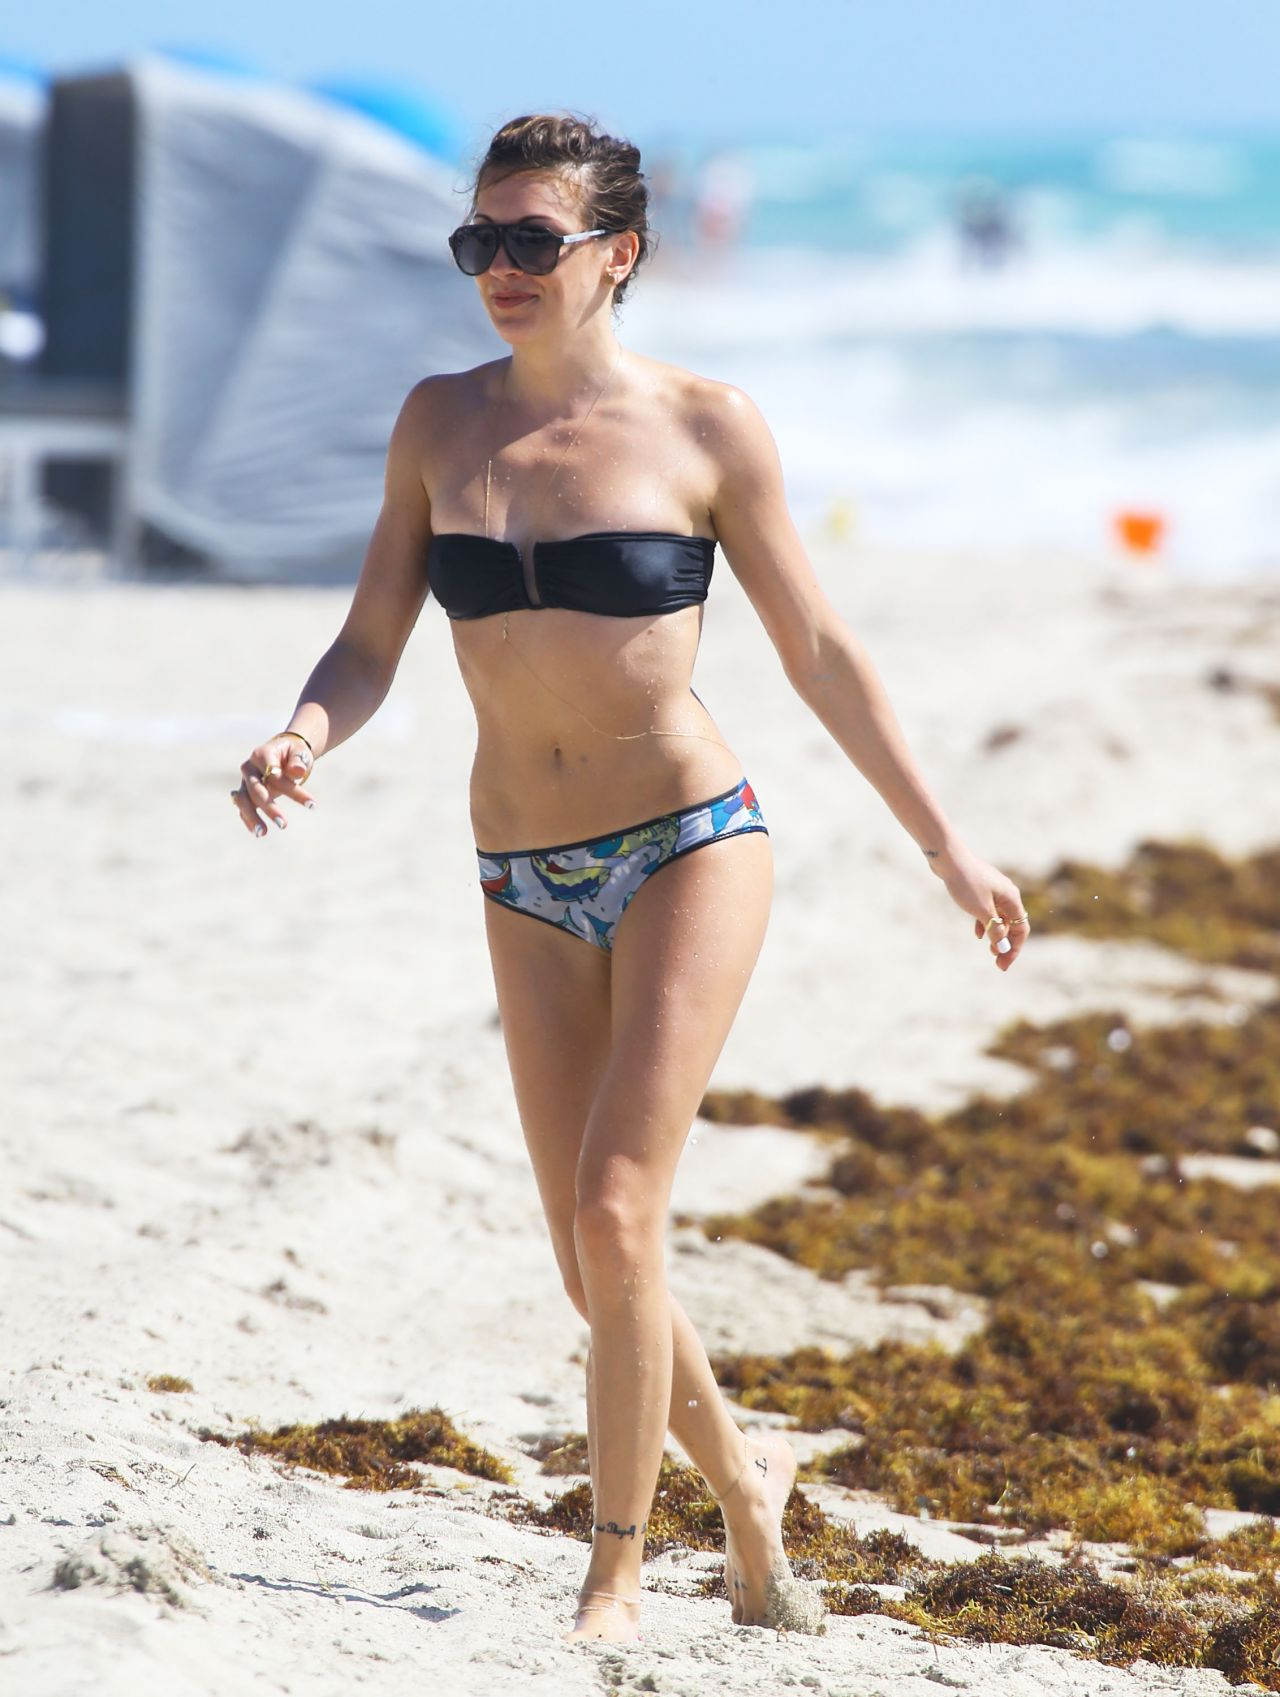 Katie Cassidy in a Bikini on the Beach in Miami - April 2014